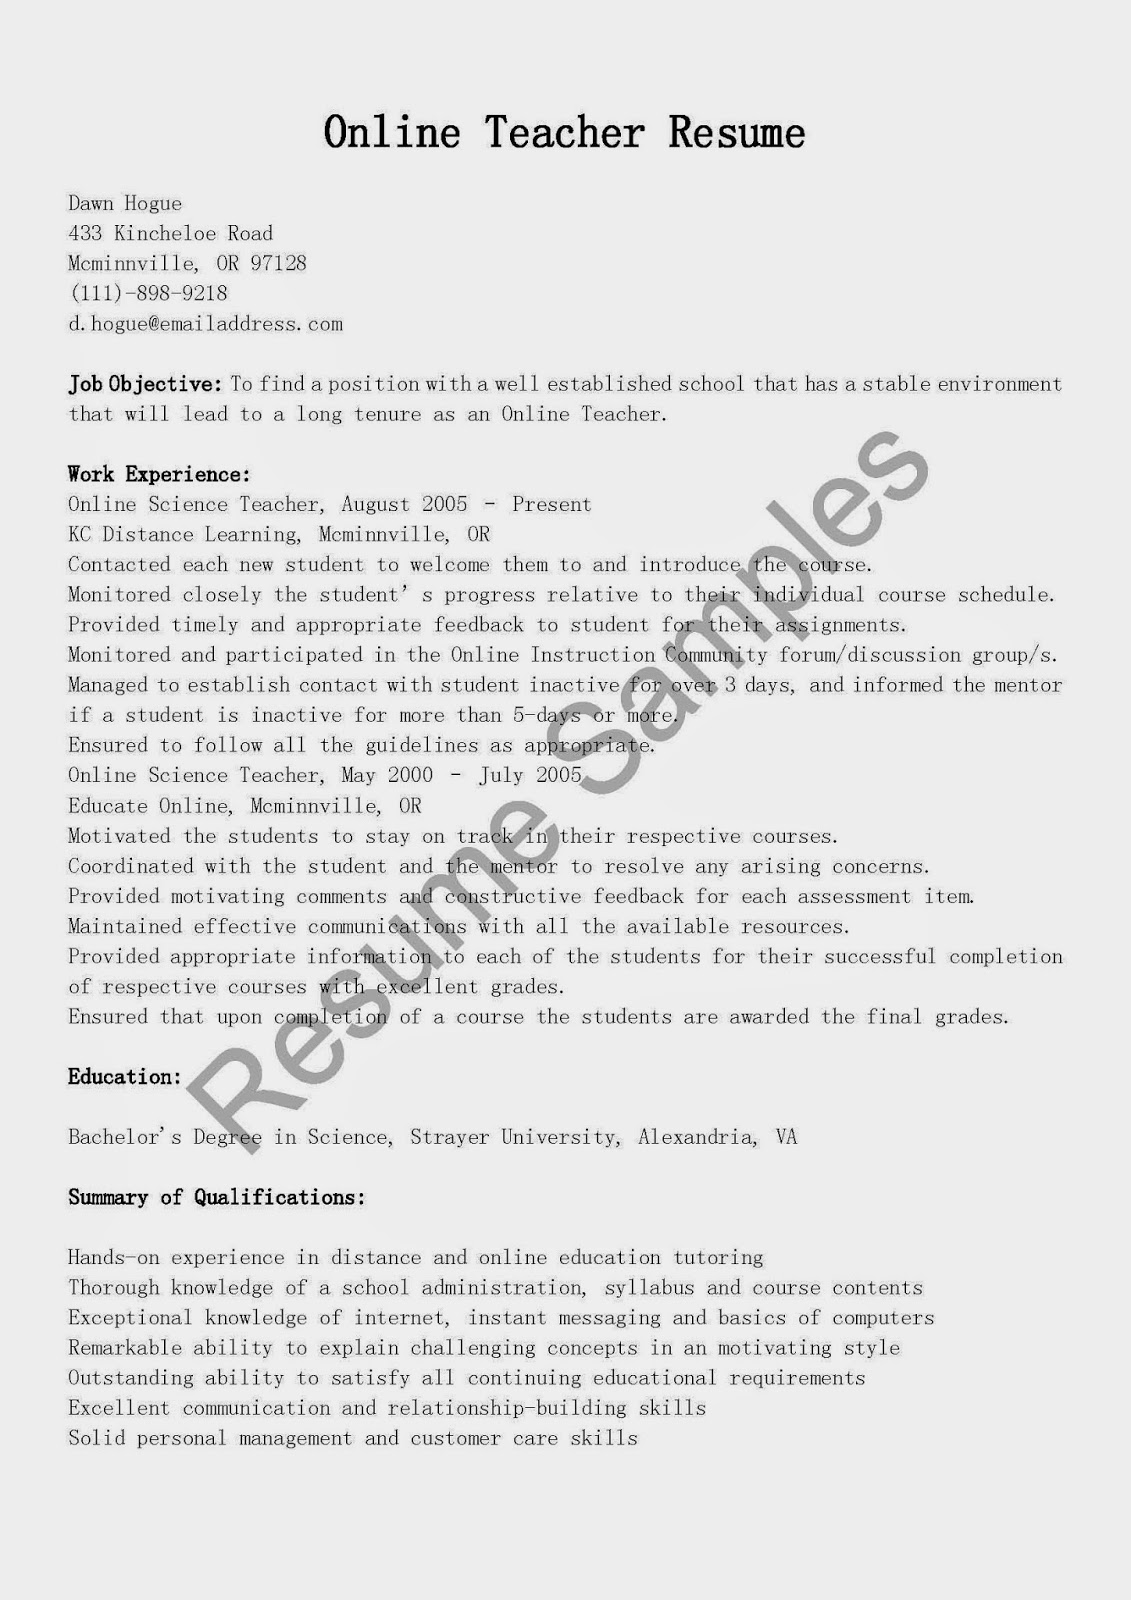 Resume Samples Online Resume Samples Online Teacher Resume Sample